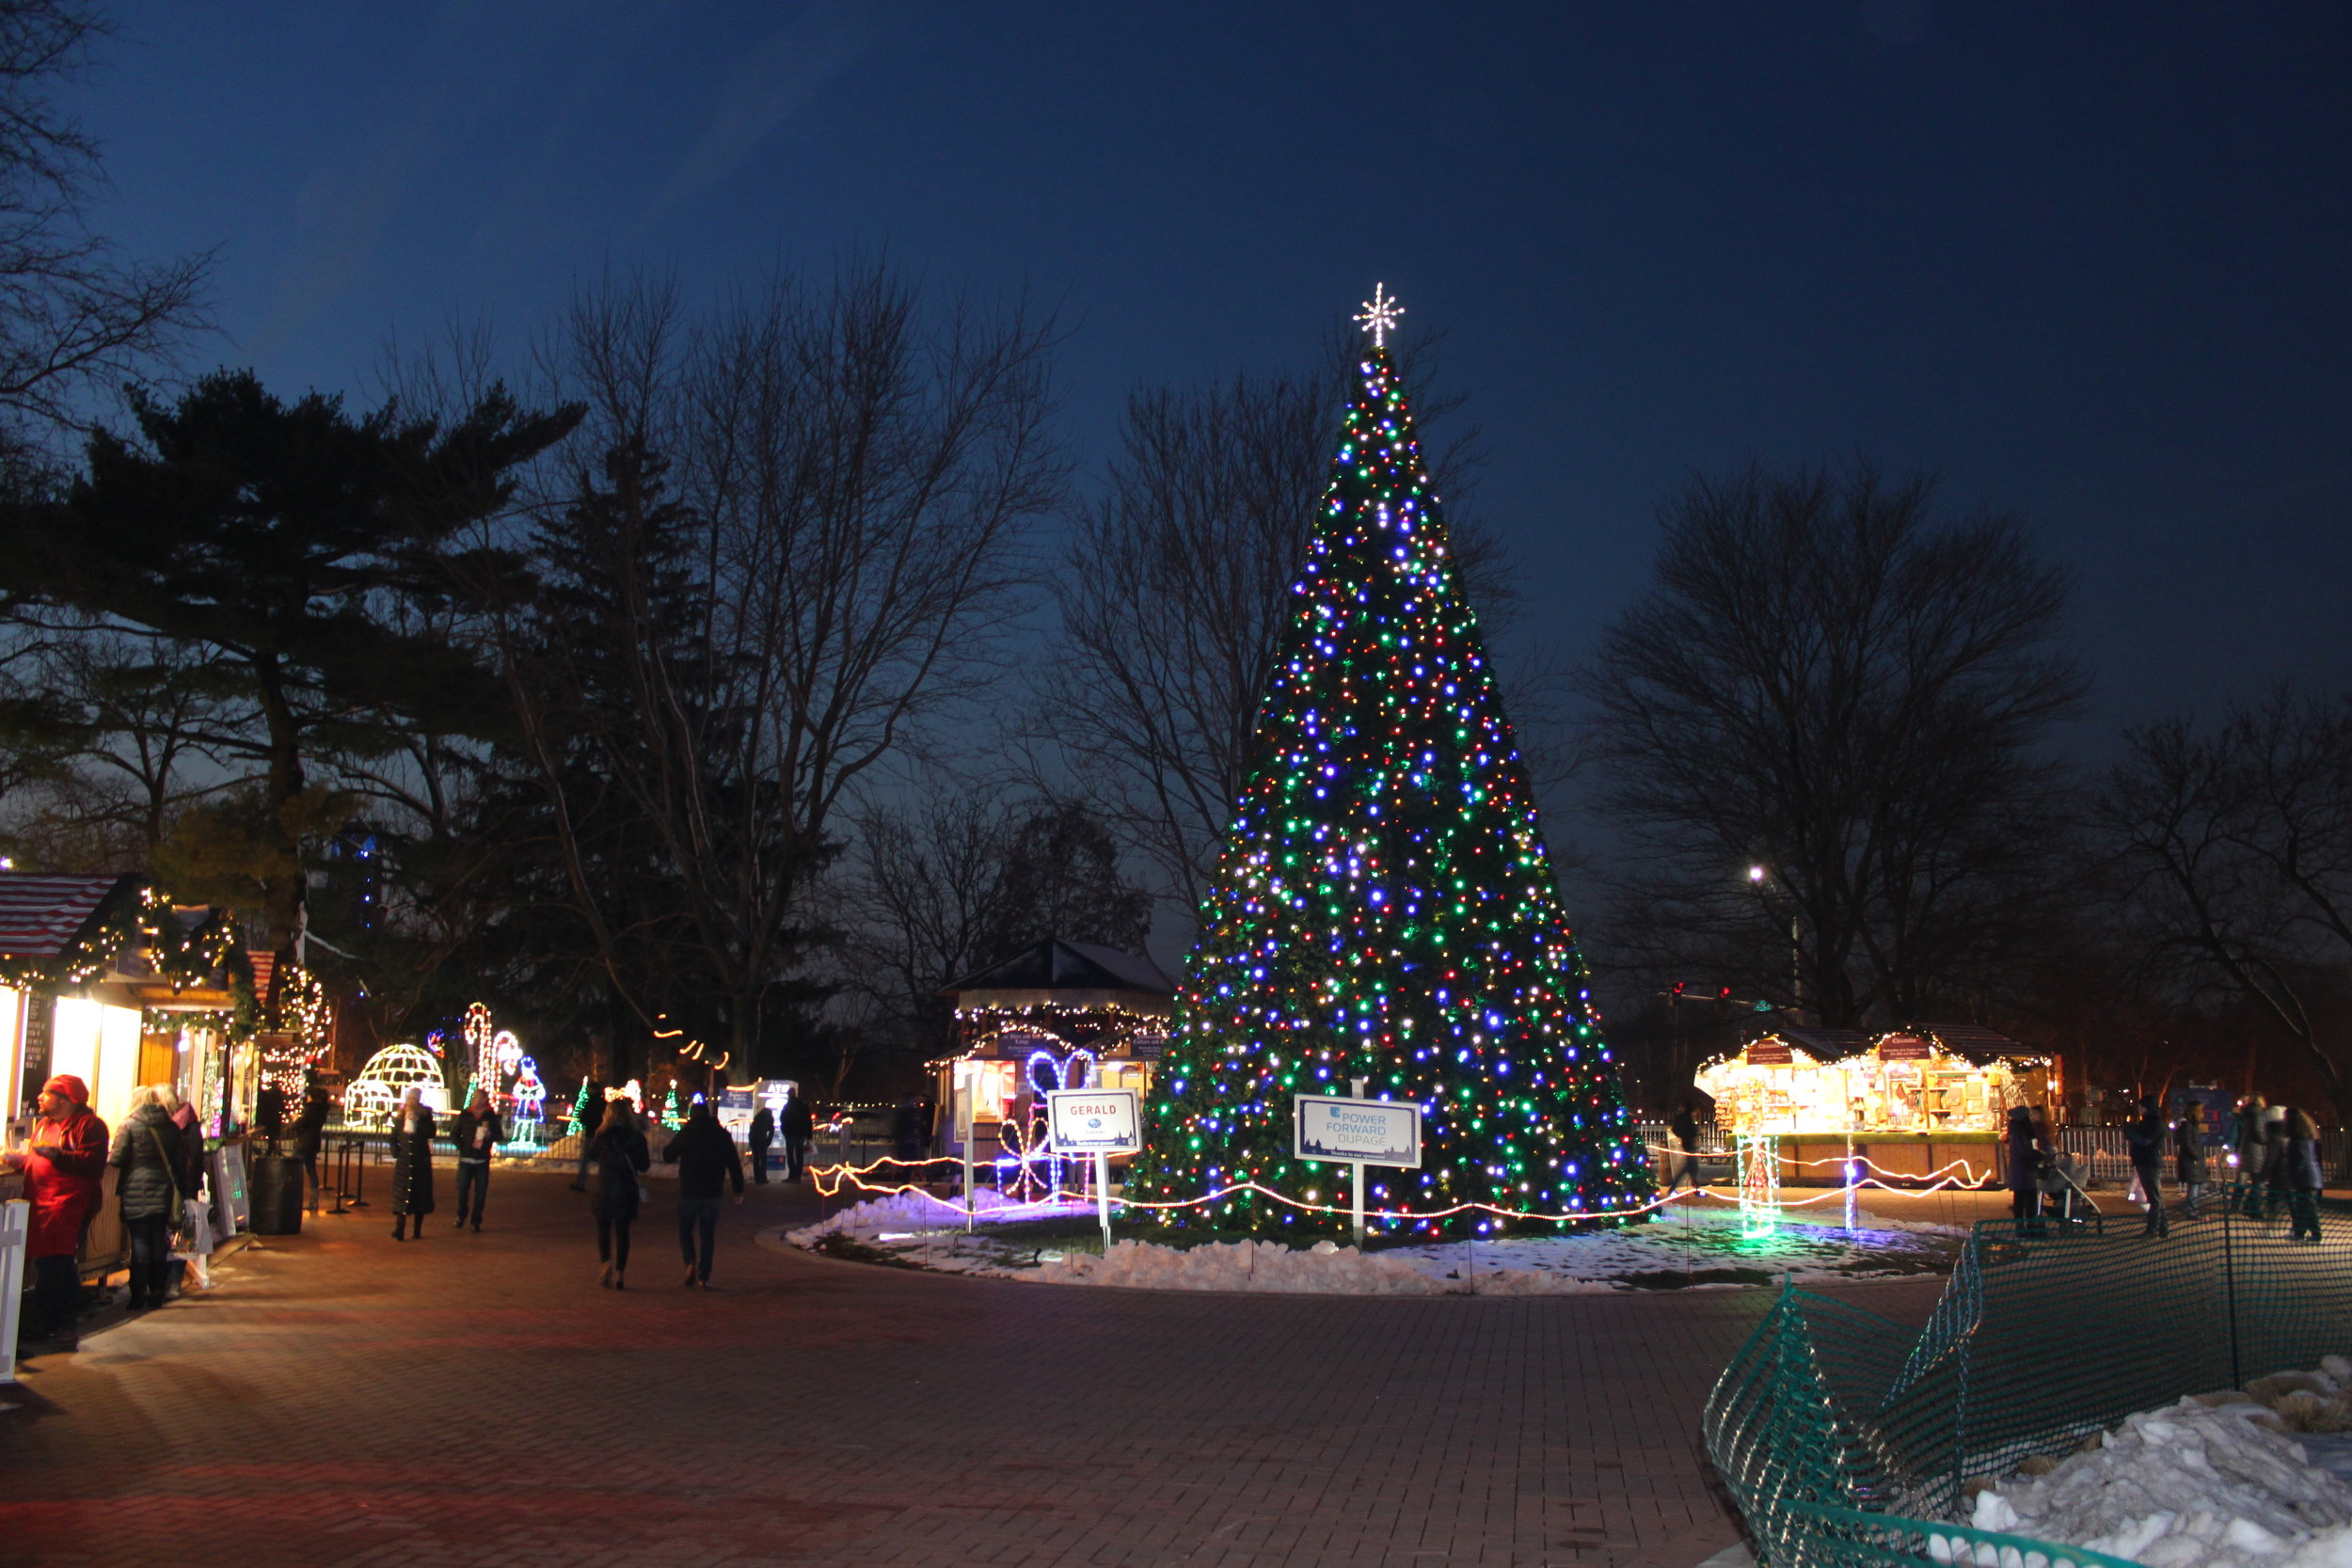 A large Christmas tree greets guests as they arrive.